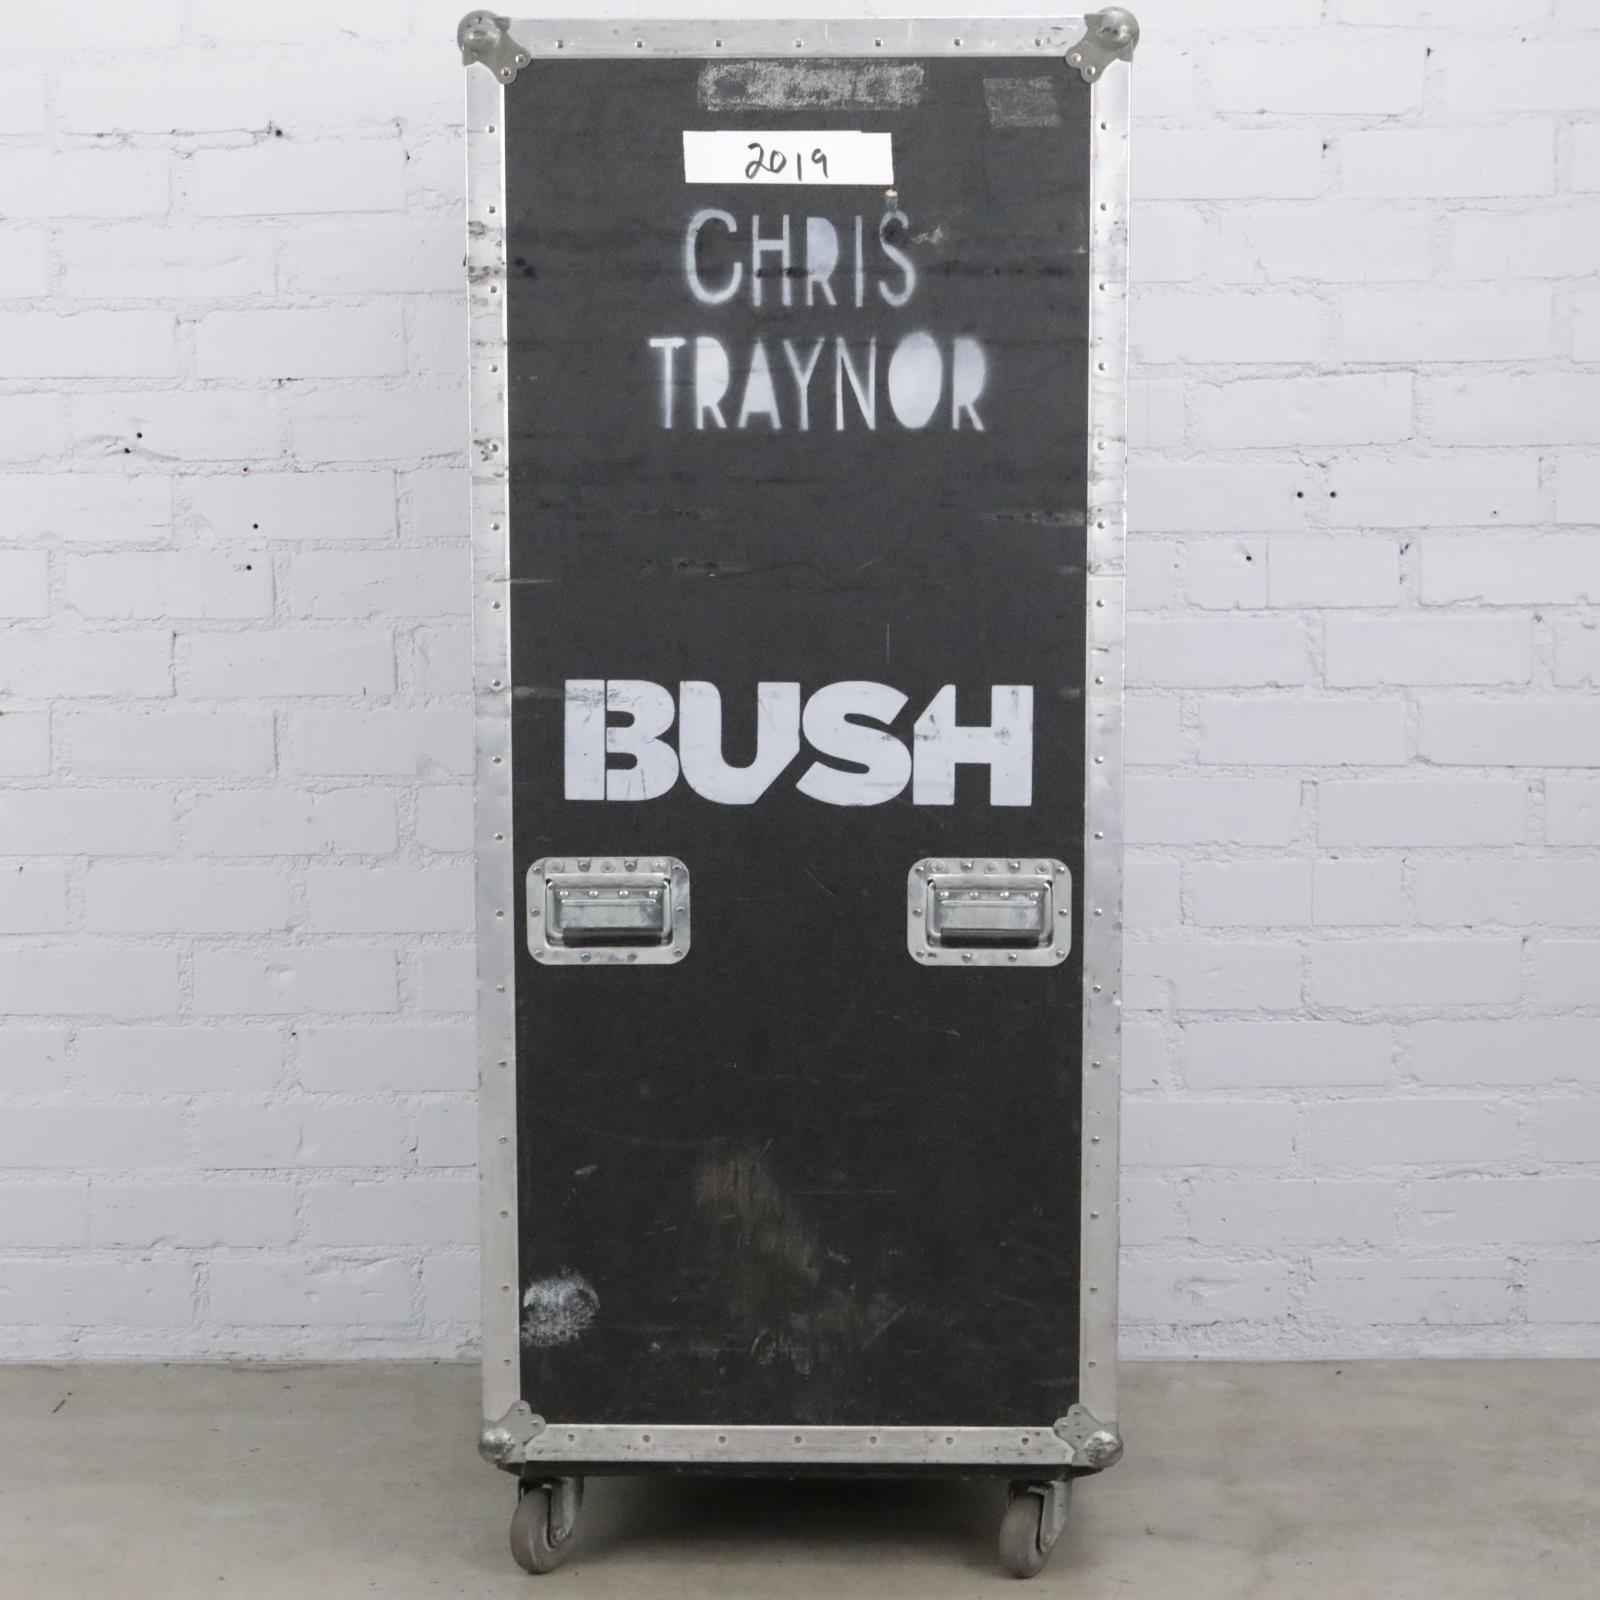 Dragon Case 23U 23 Space ATA Rack Road Case Used By Chris Traynor of BUSH #41843